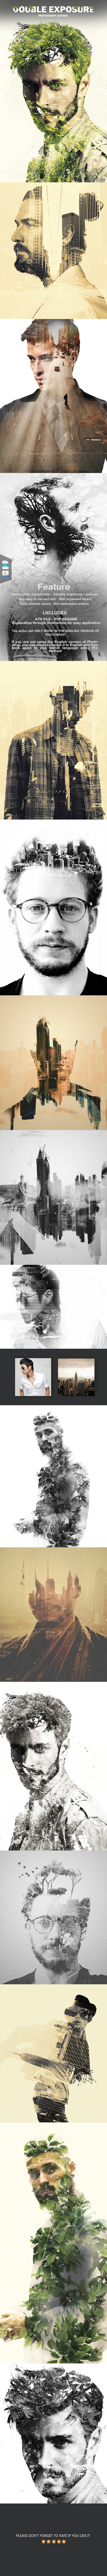 GraphicRiver Double Exposure Photoshop Action 11561345